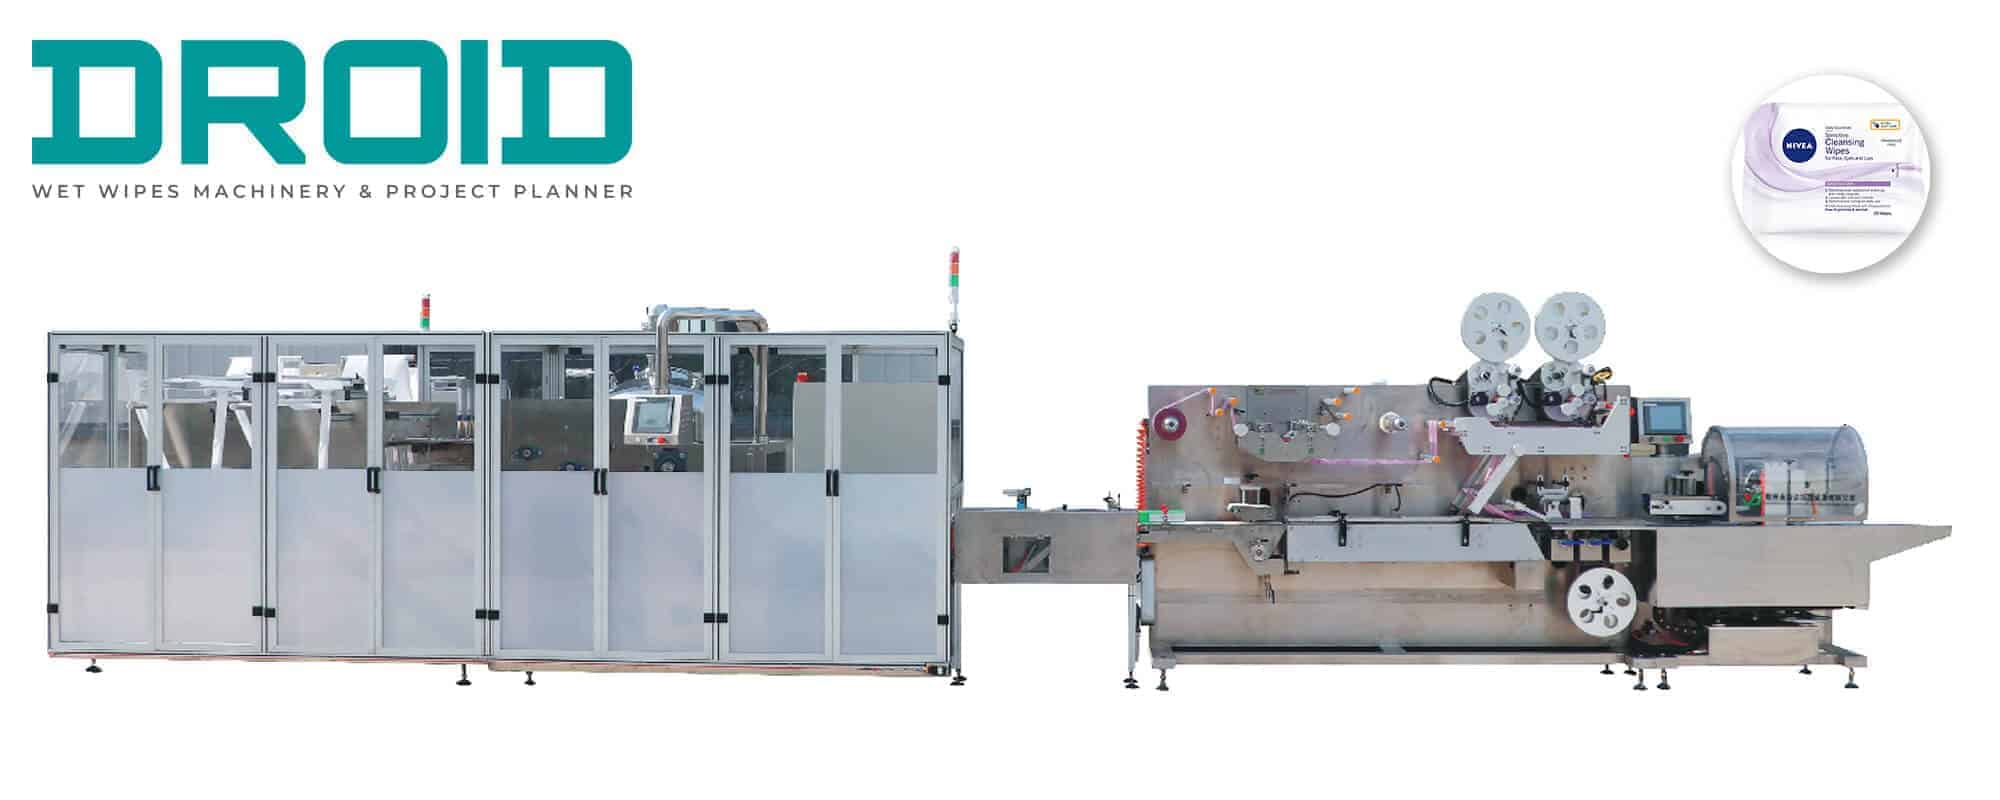 UT FL4 cross fold wet wipes converting and packaging machine - Are you looking for Disinfectant Wet Wipes Machine?